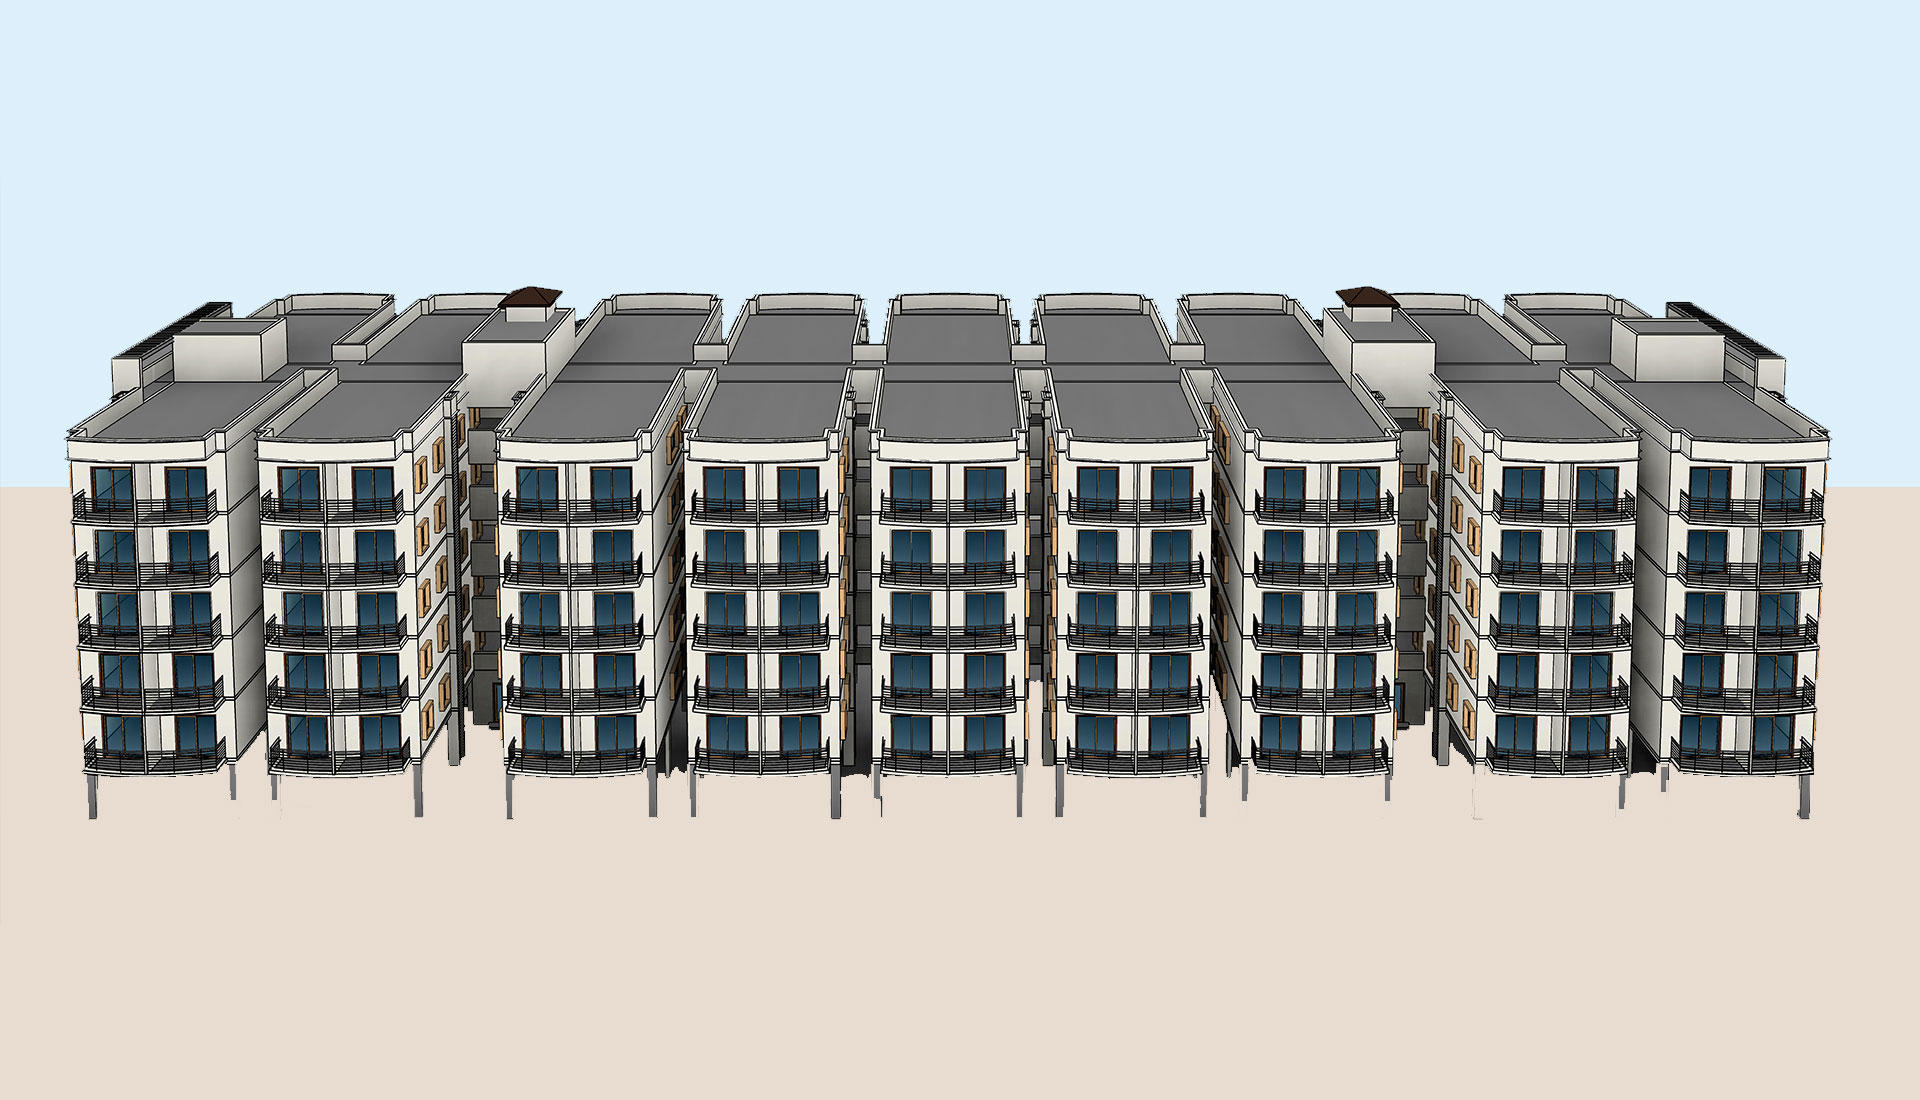 Architecture-3D-Model_Multi-Residential-Apartments_BIM-Modeling-Project-by-United-BIM